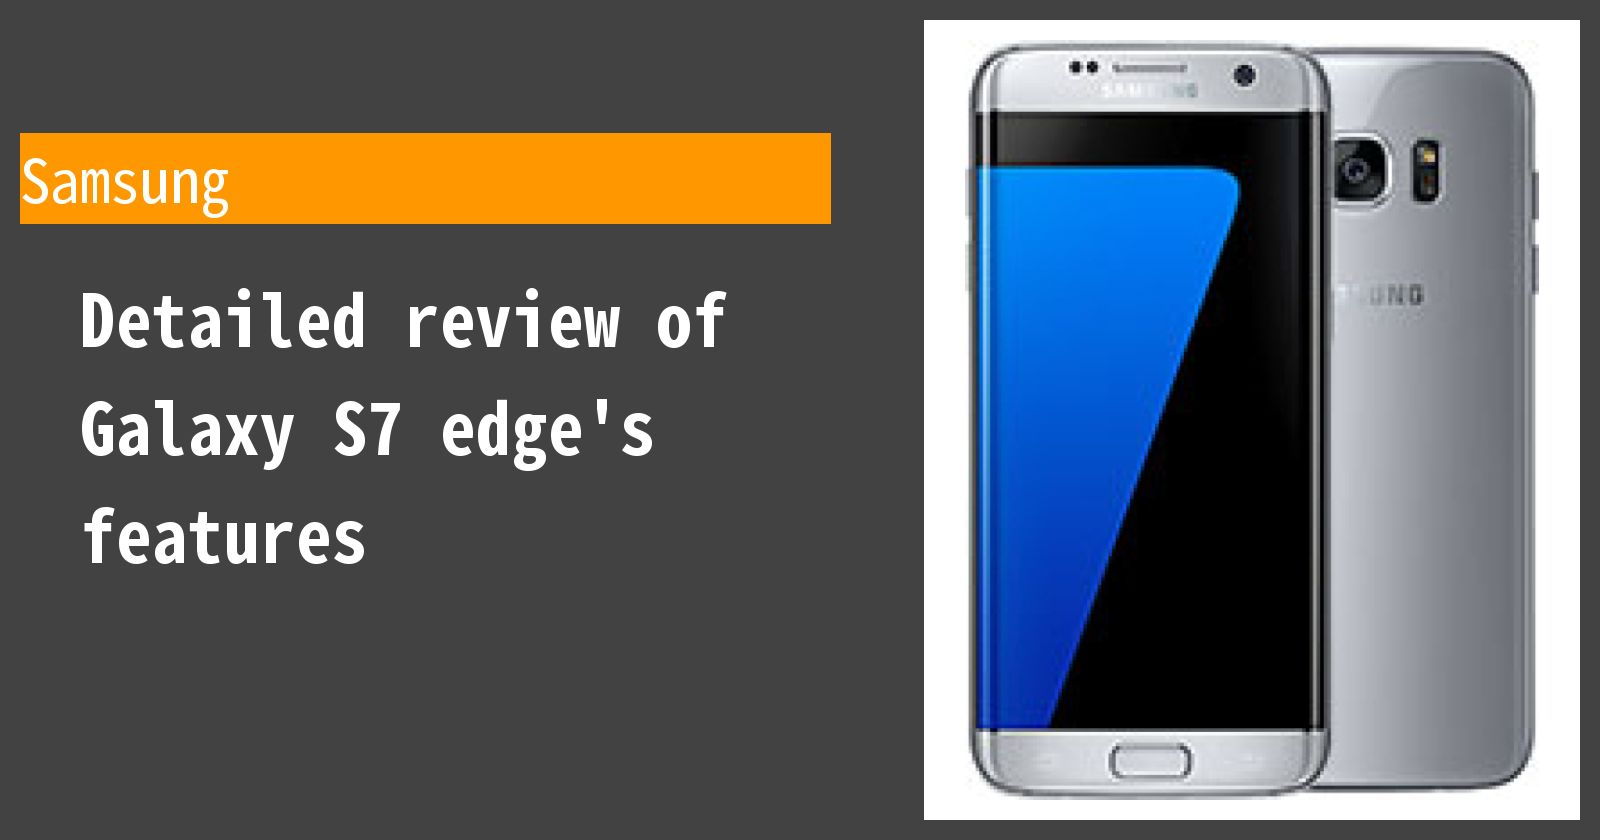 Detailed review of Galaxy S7 edge's features